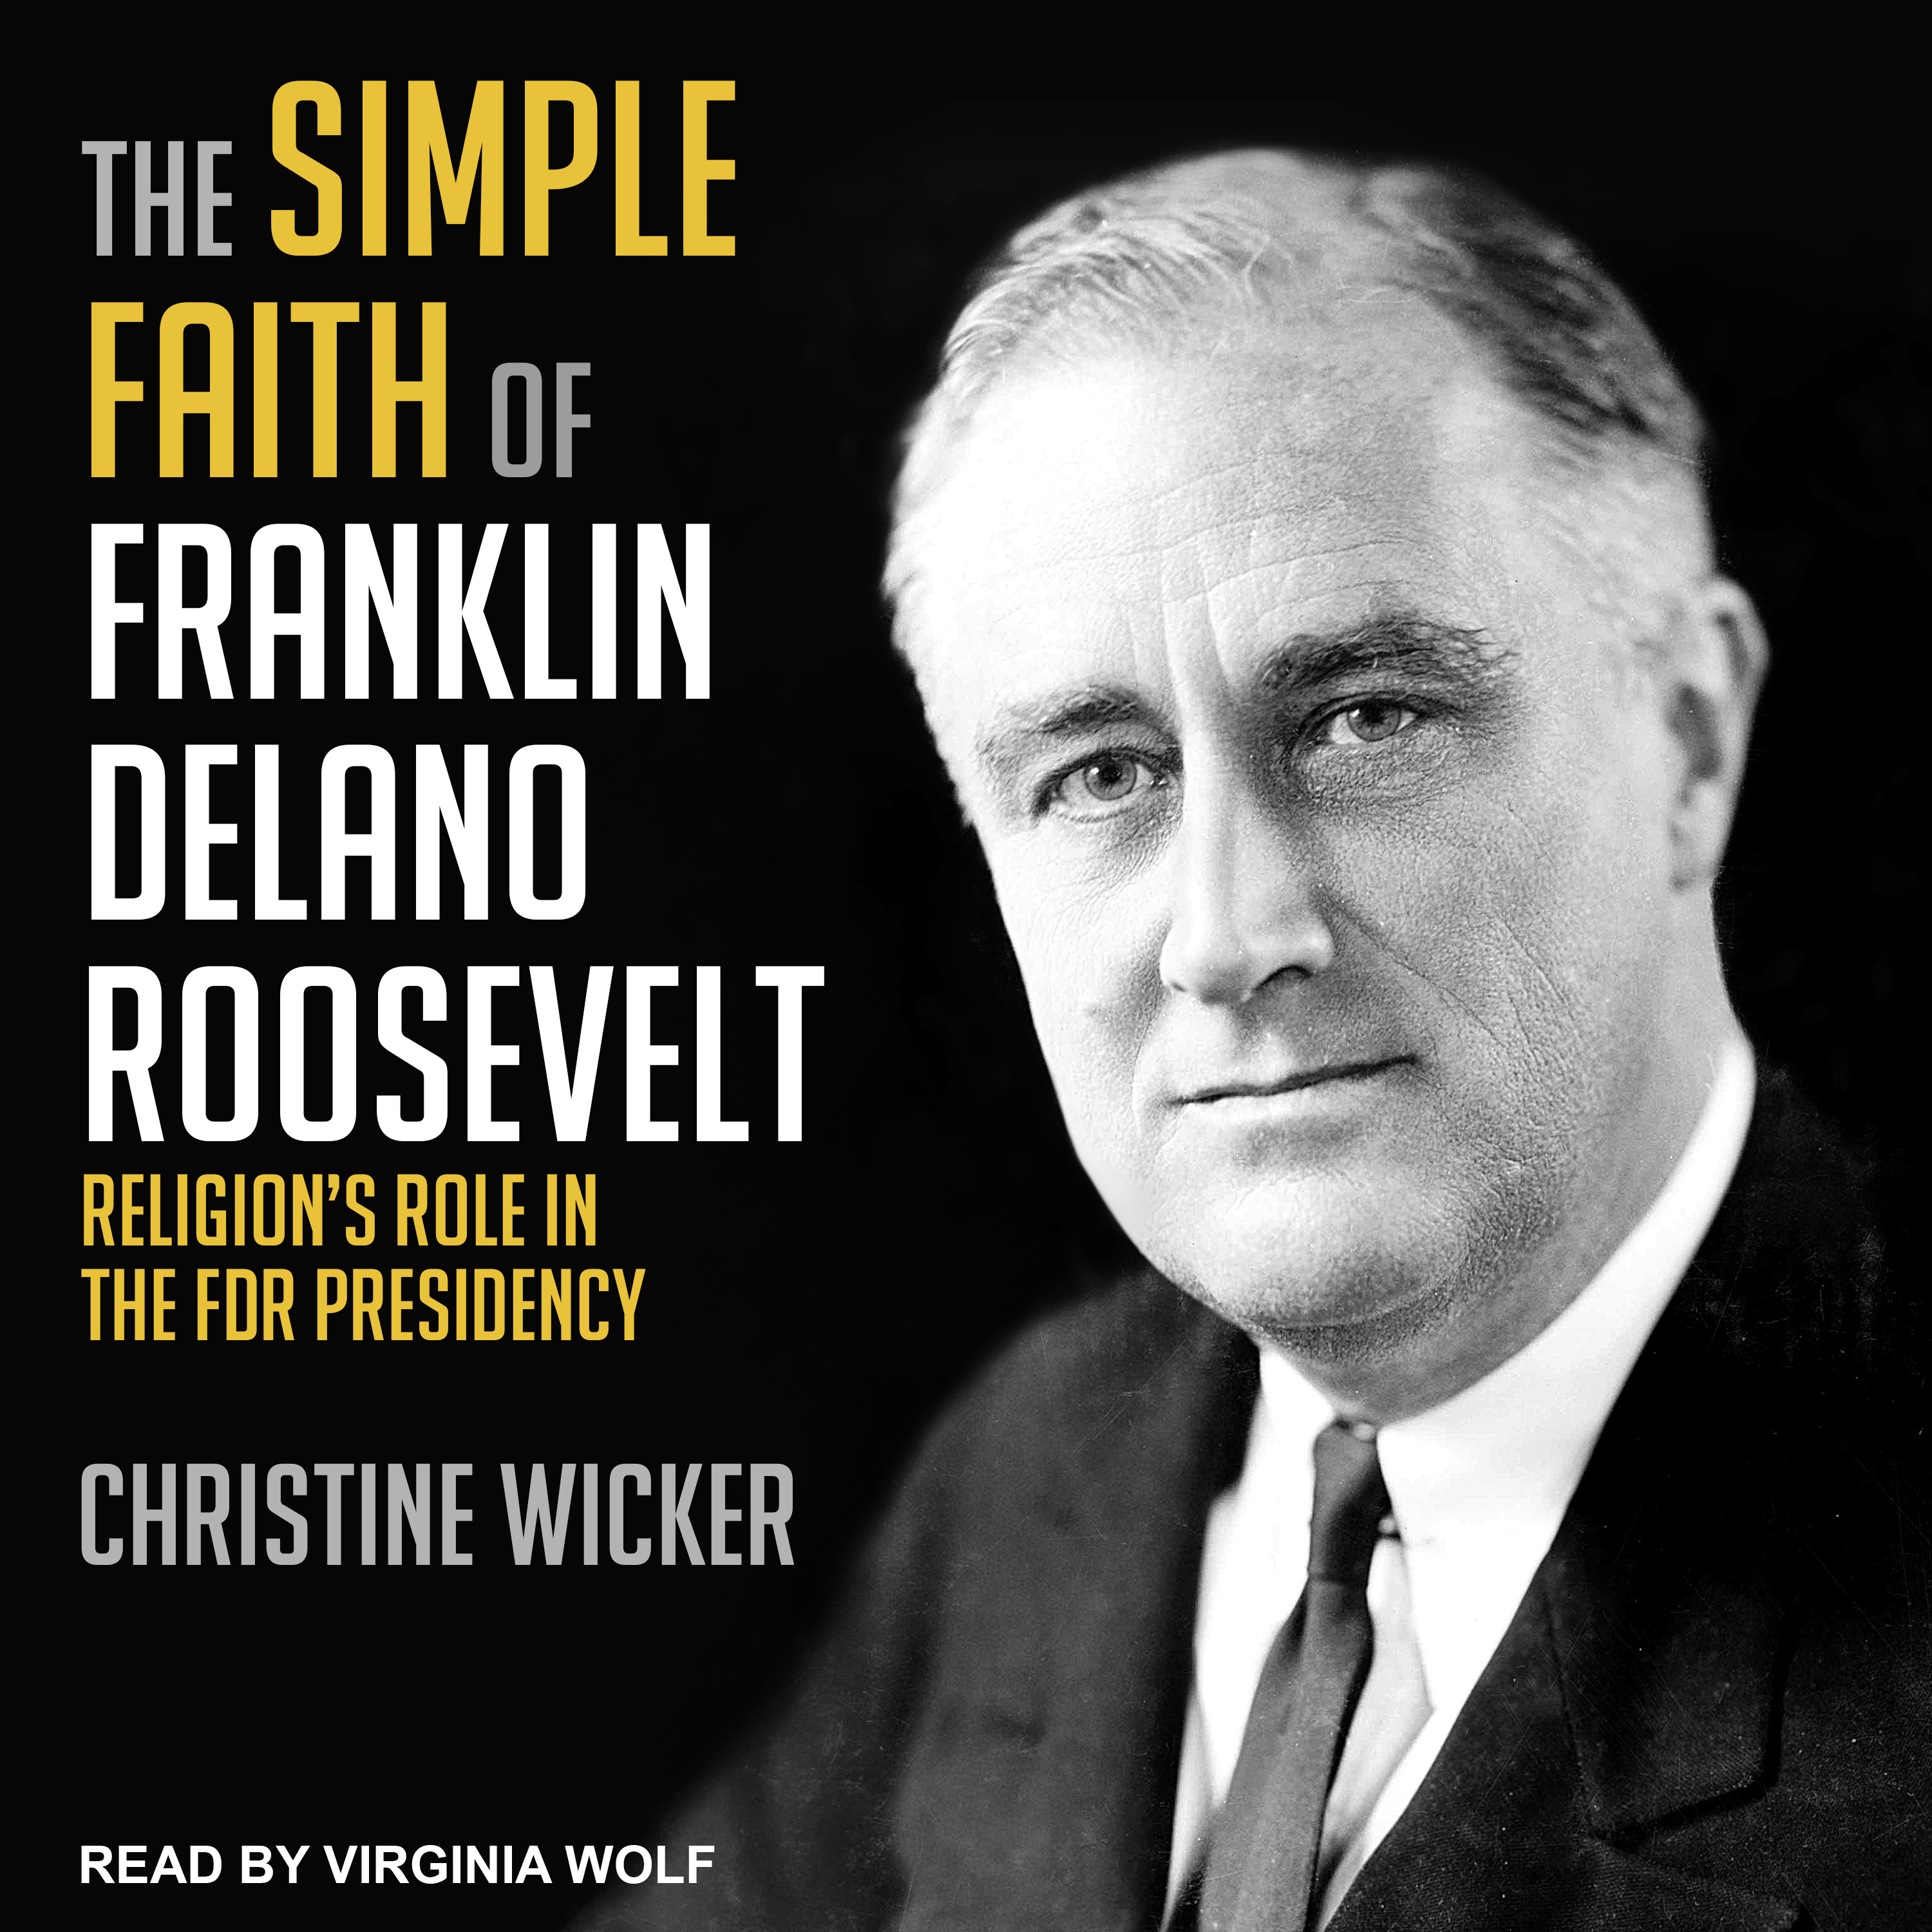 Printable The Simple Faith of Franklin Delano Roosevelt: Religion's Role in the FDR Presidency Audiobook Cover Art